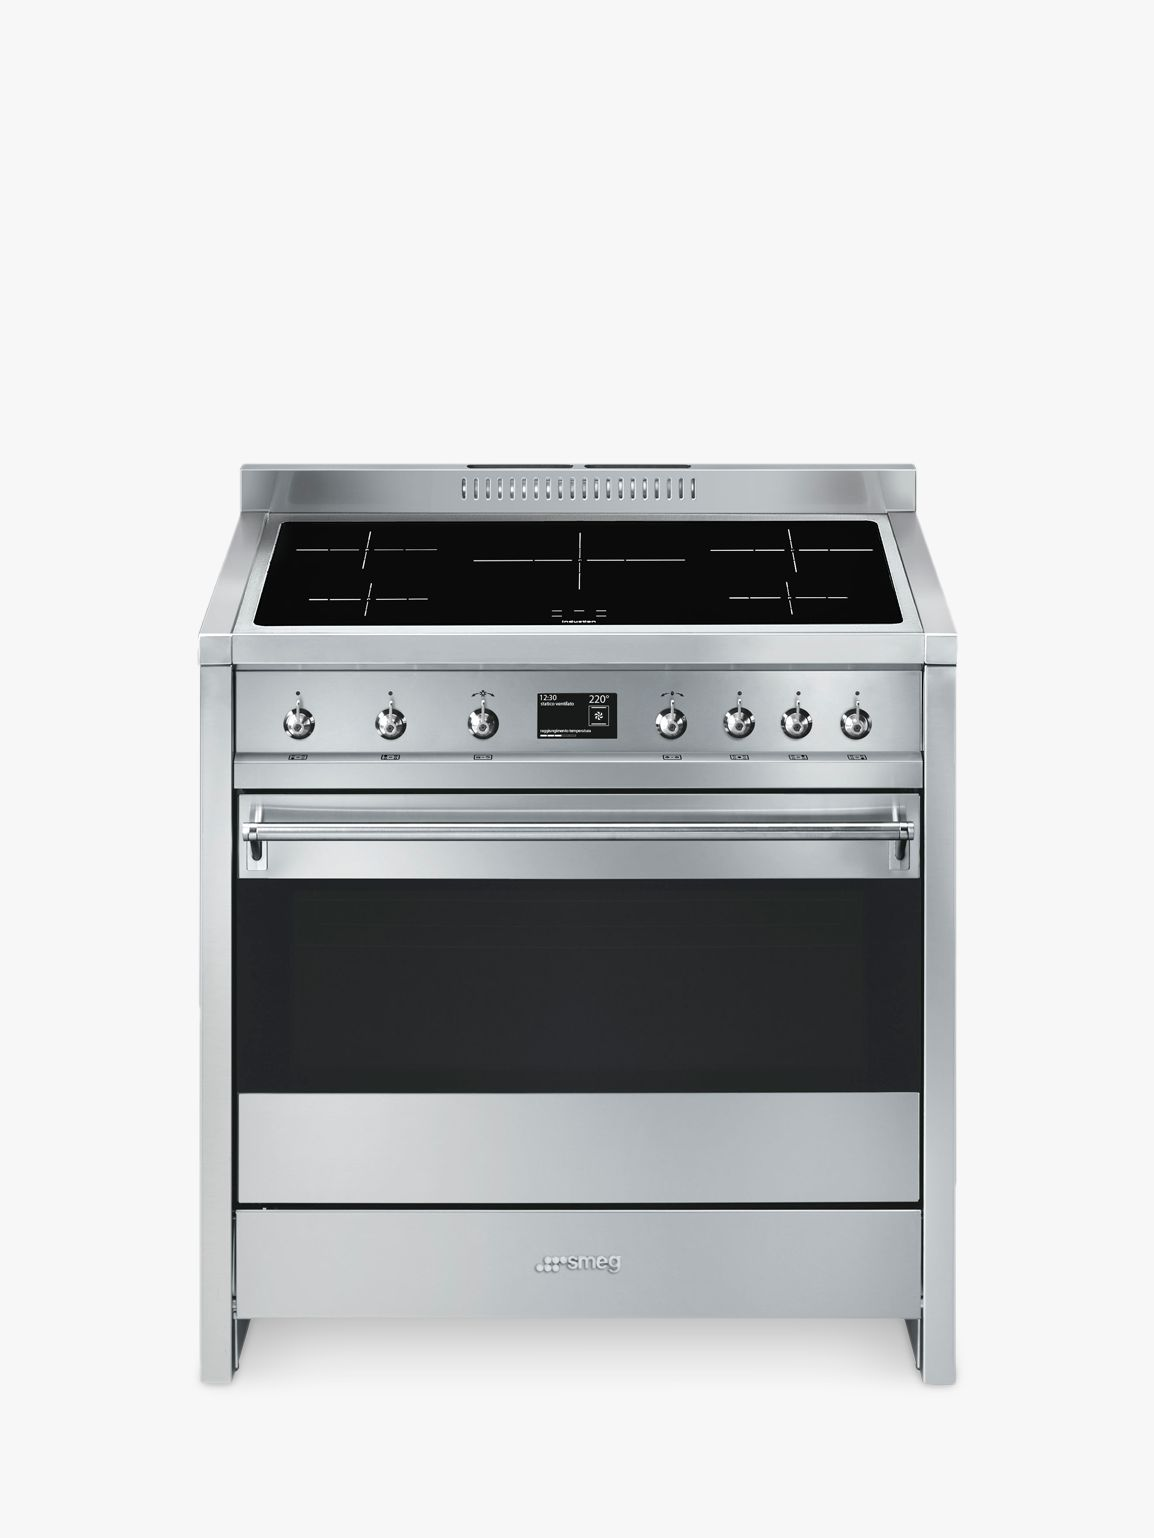 buysmeg a1pyid 9 90cm electric single oven cooker a energy rating stainless steel  [ 1440 x 1920 Pixel ]